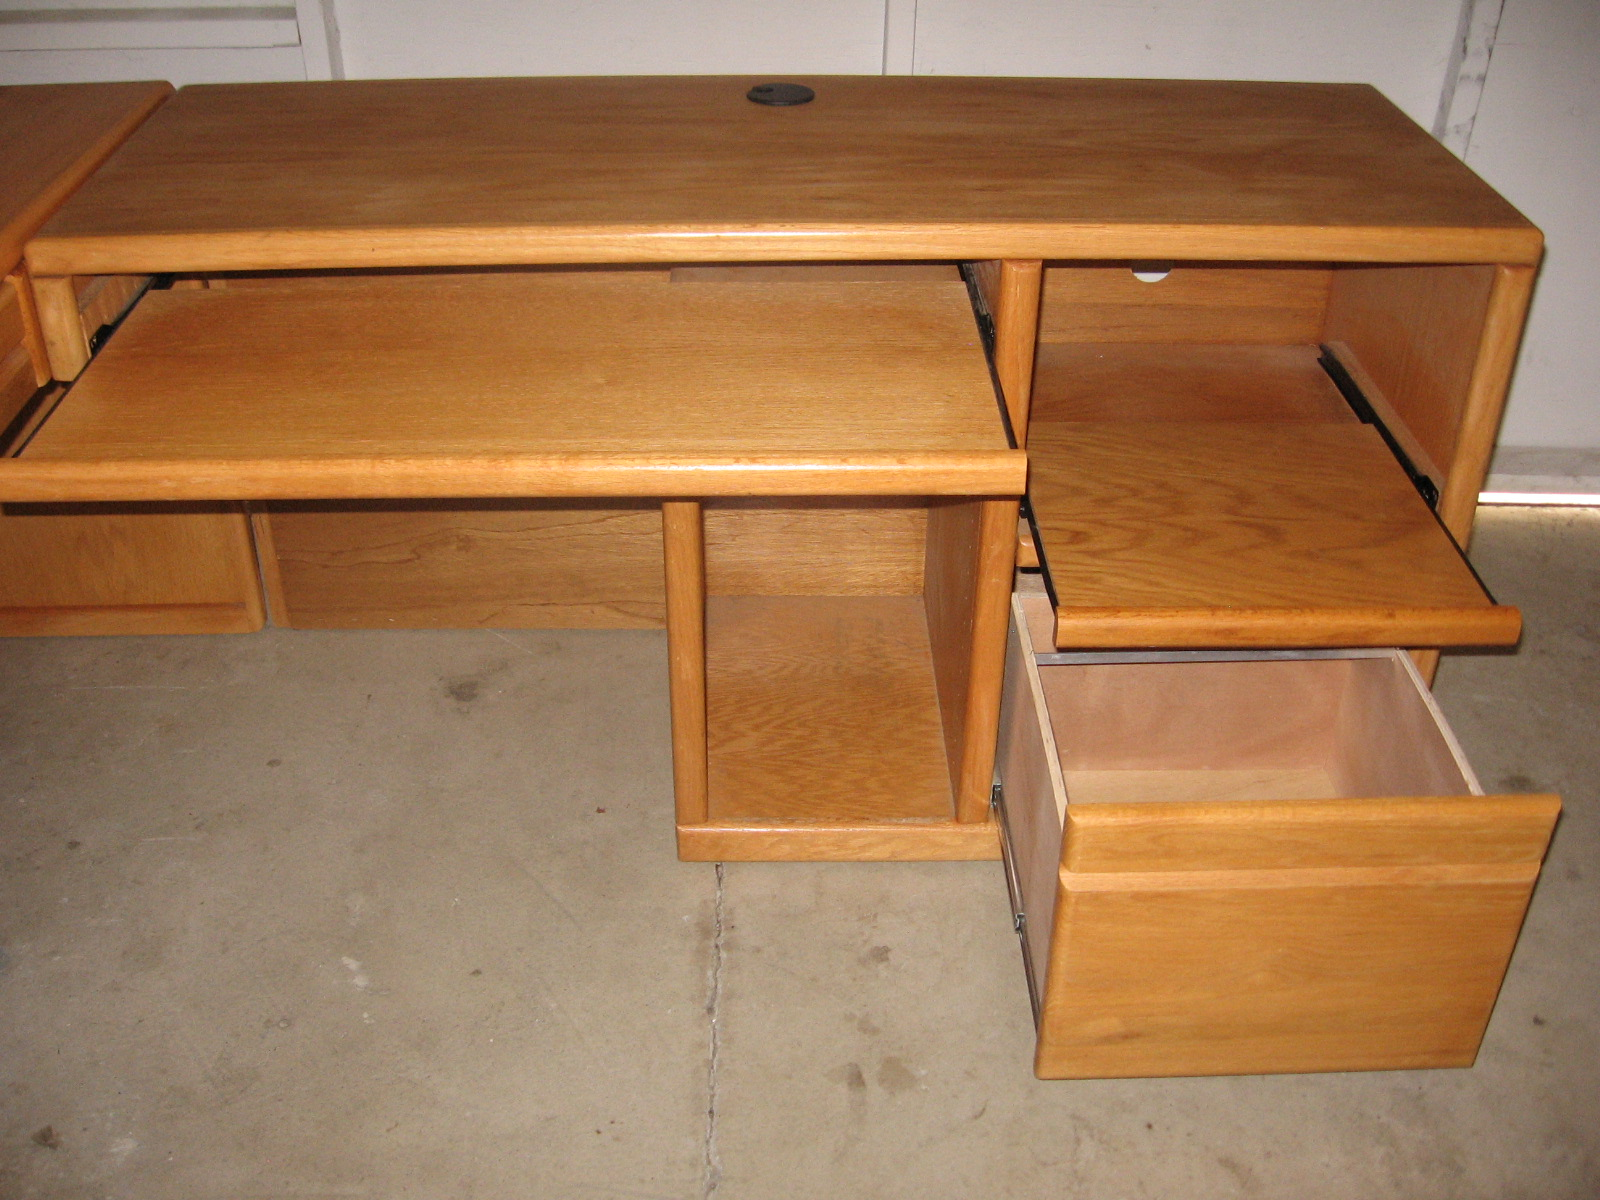 FOR SALE: SOLID OAK DESK, LARGE T.V., and PATIO TABLE and CHAIRS